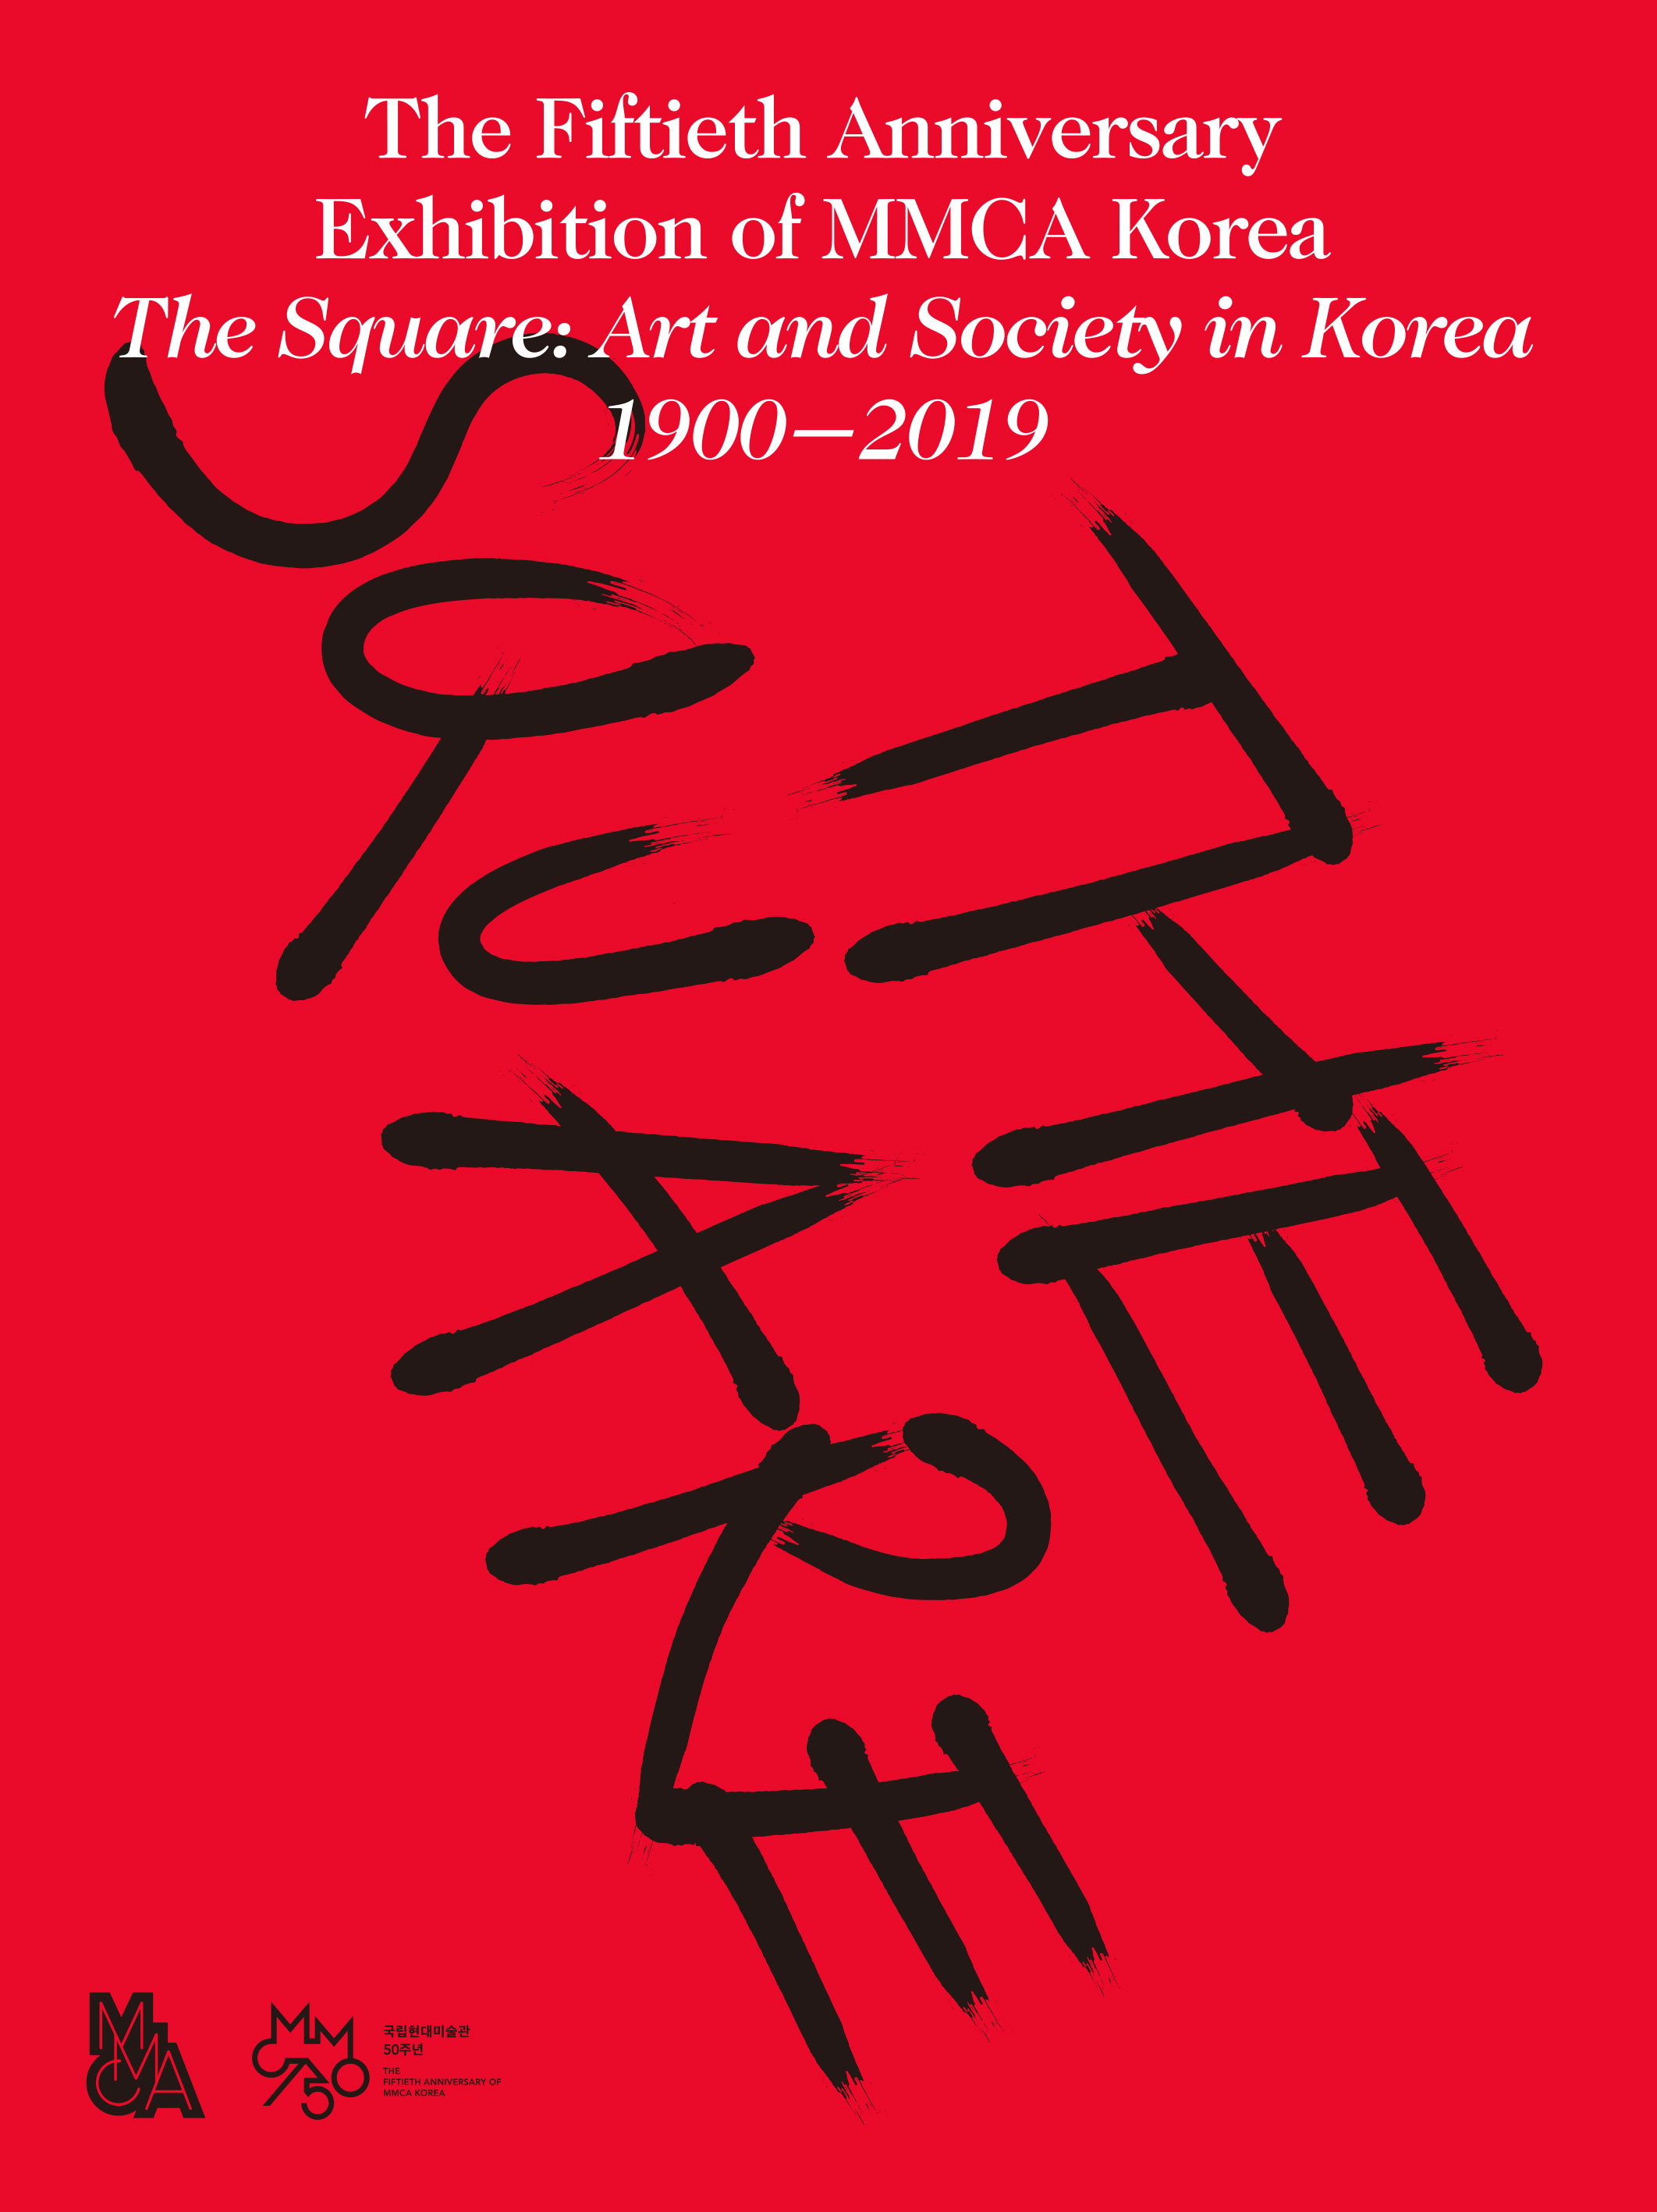 The Square: Art and Society in Korea 1900 -2019